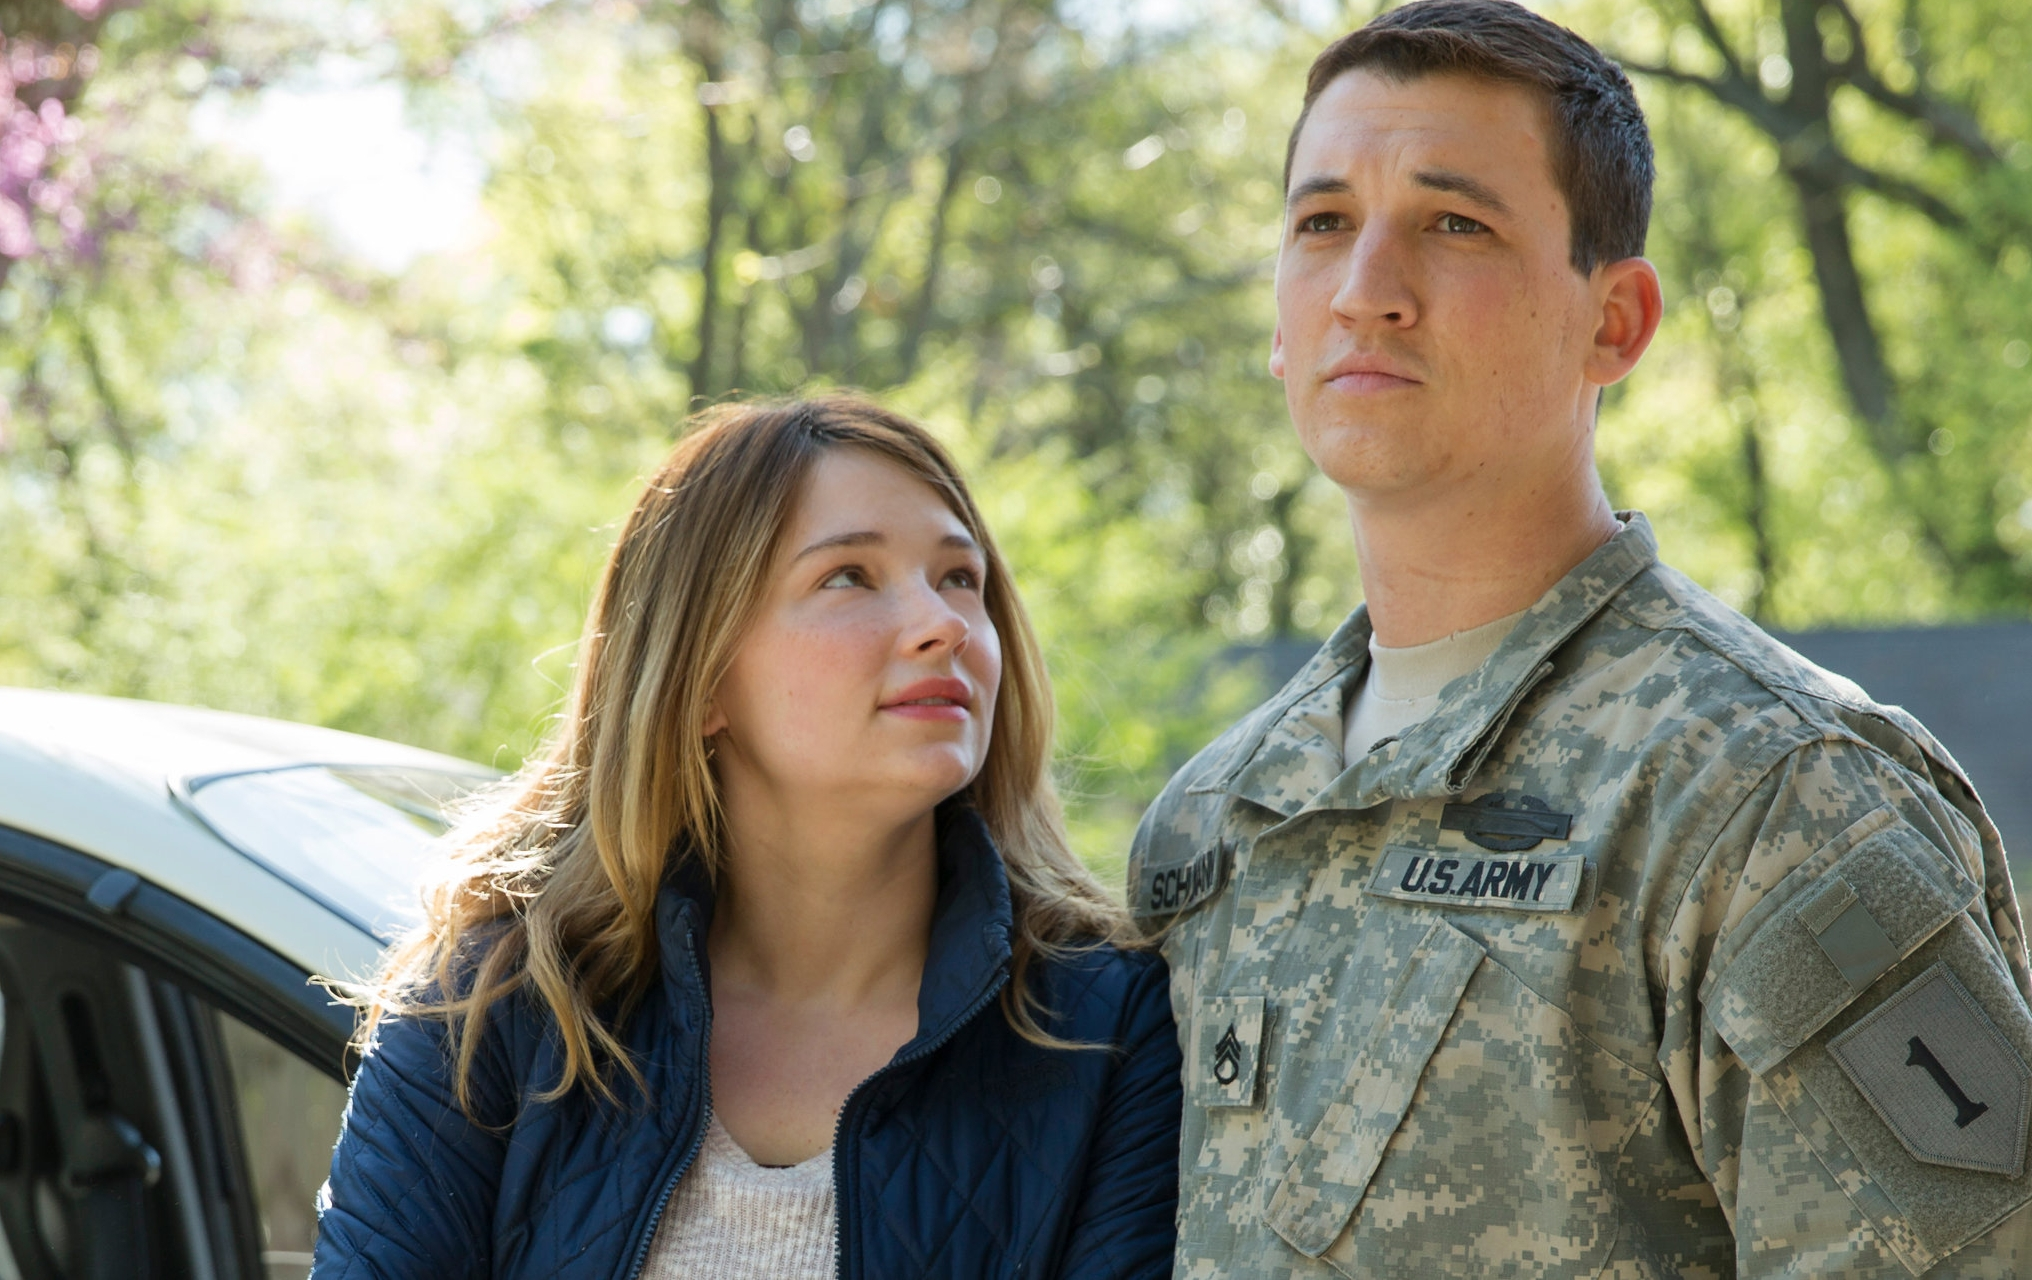 Haley Bennett outacts Miles Teller just by looking at him